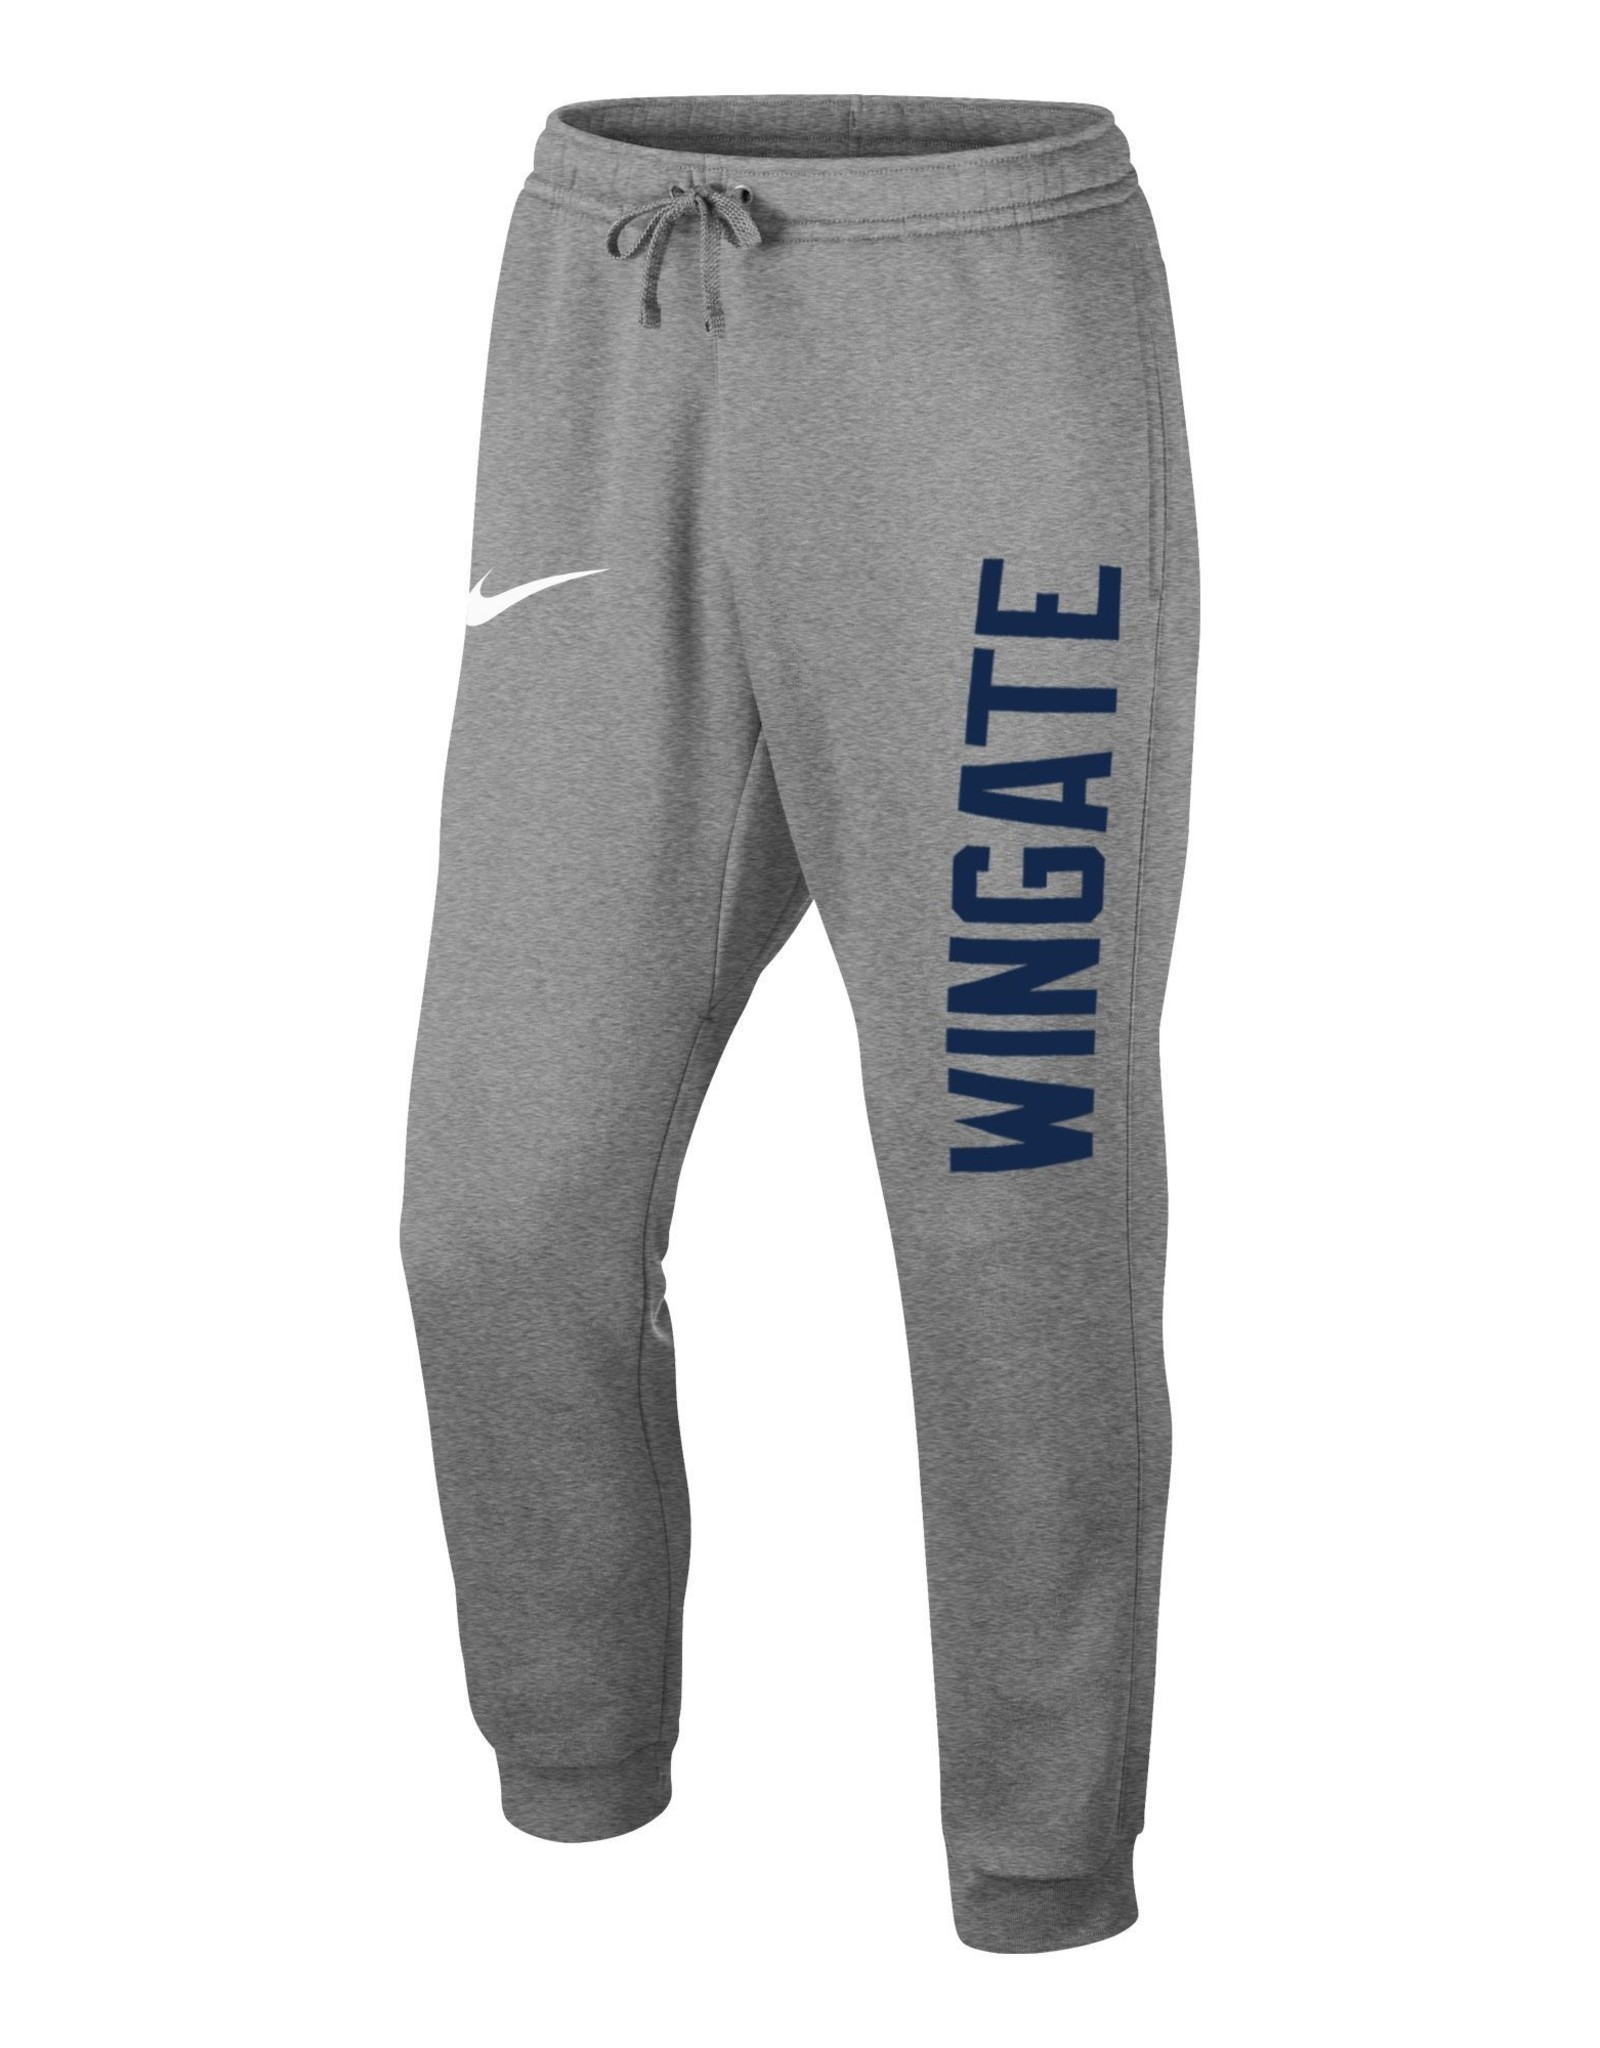 Nike Unisex Dark Heather Club Fleece Jogger Pant